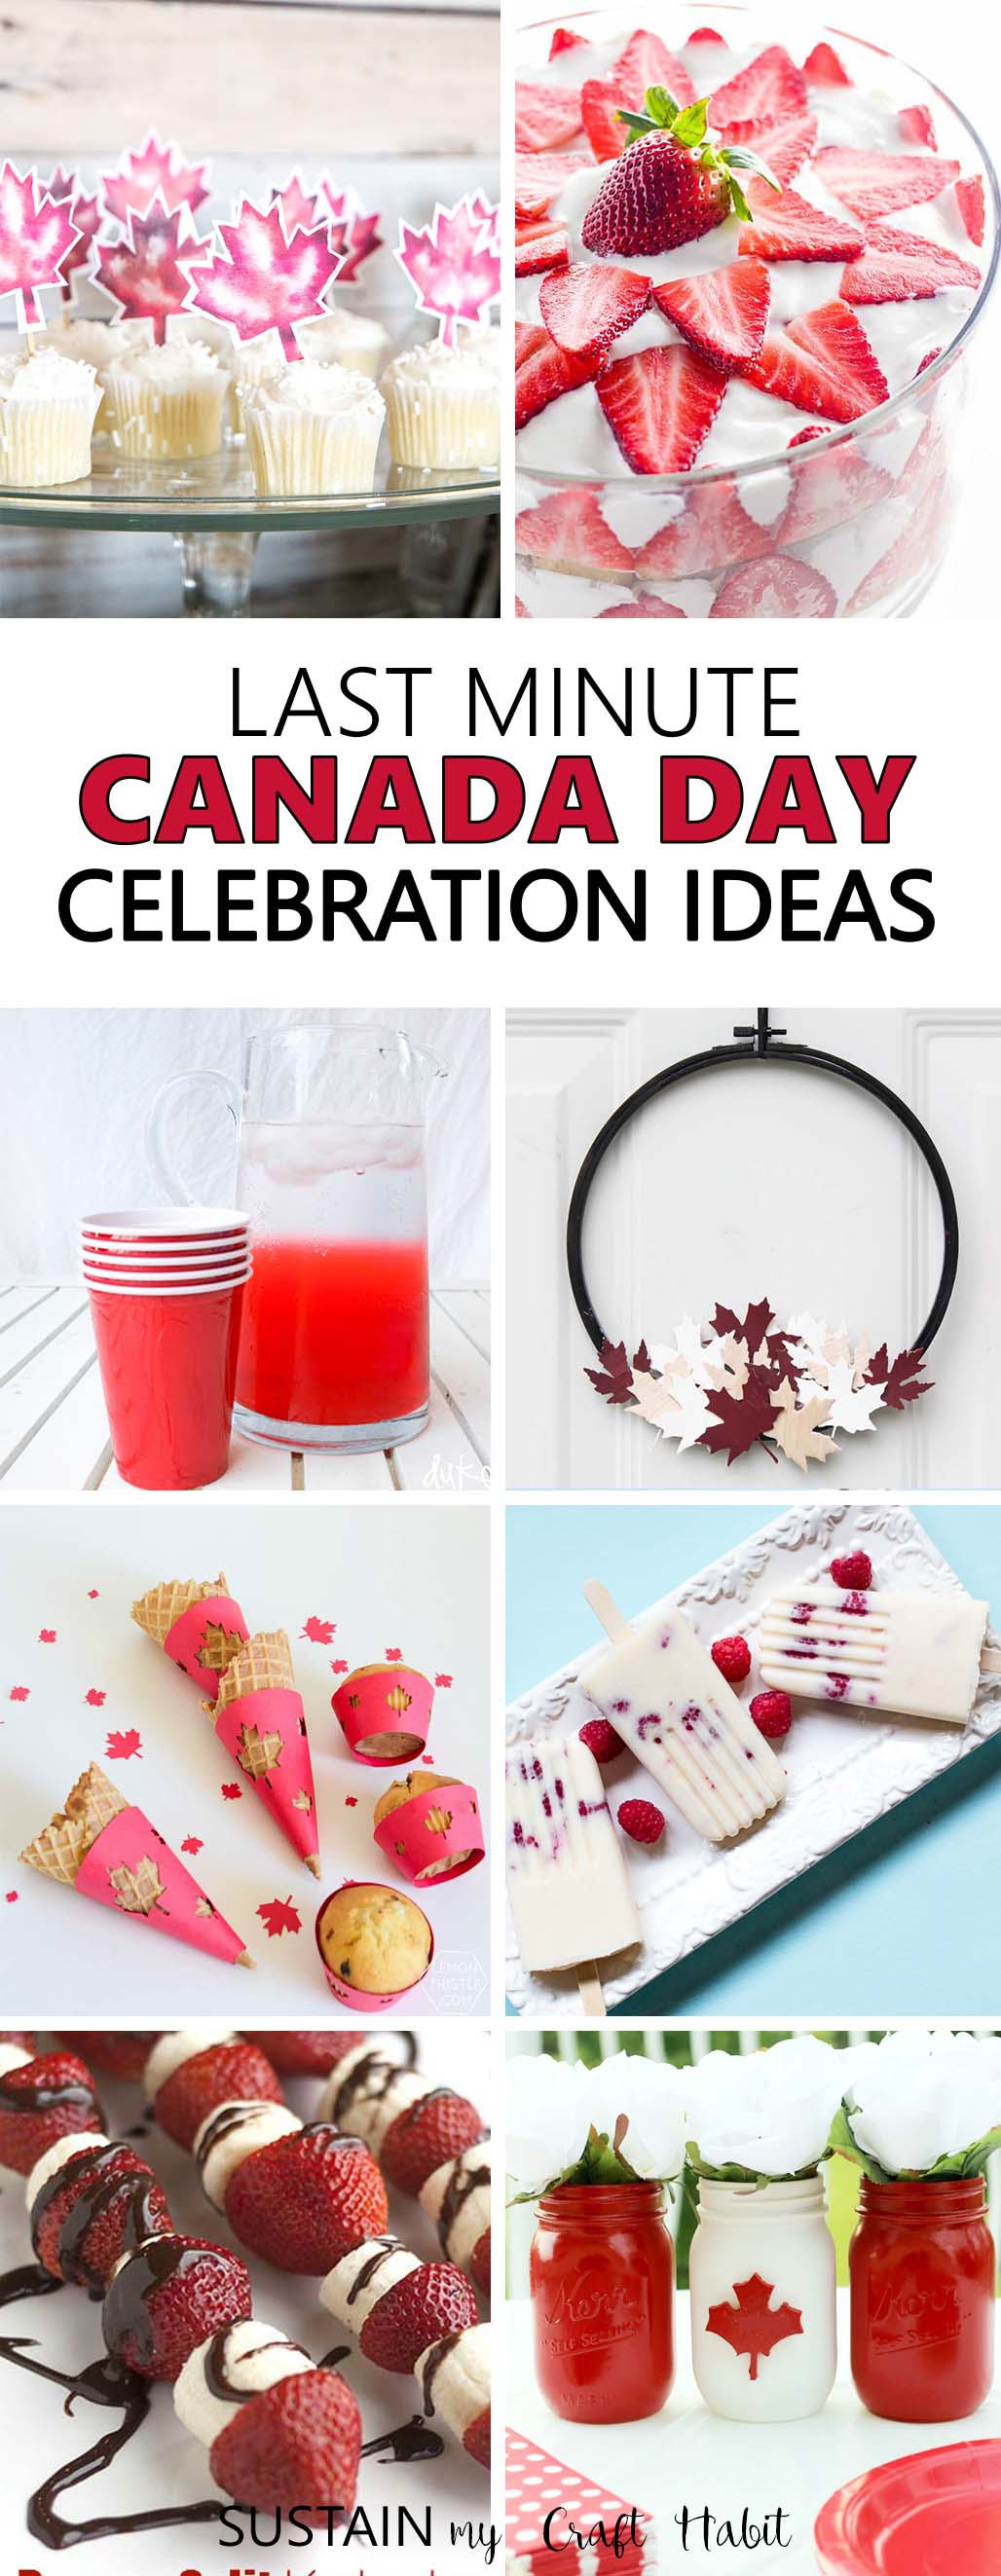 Canada Day is just around the corner. Whether you're planning ahead or looking for last minute party ideas, choose from these red and white themed Canada Day celebration ideas to get into the spirit! #canadaday #ocanada #canada1550